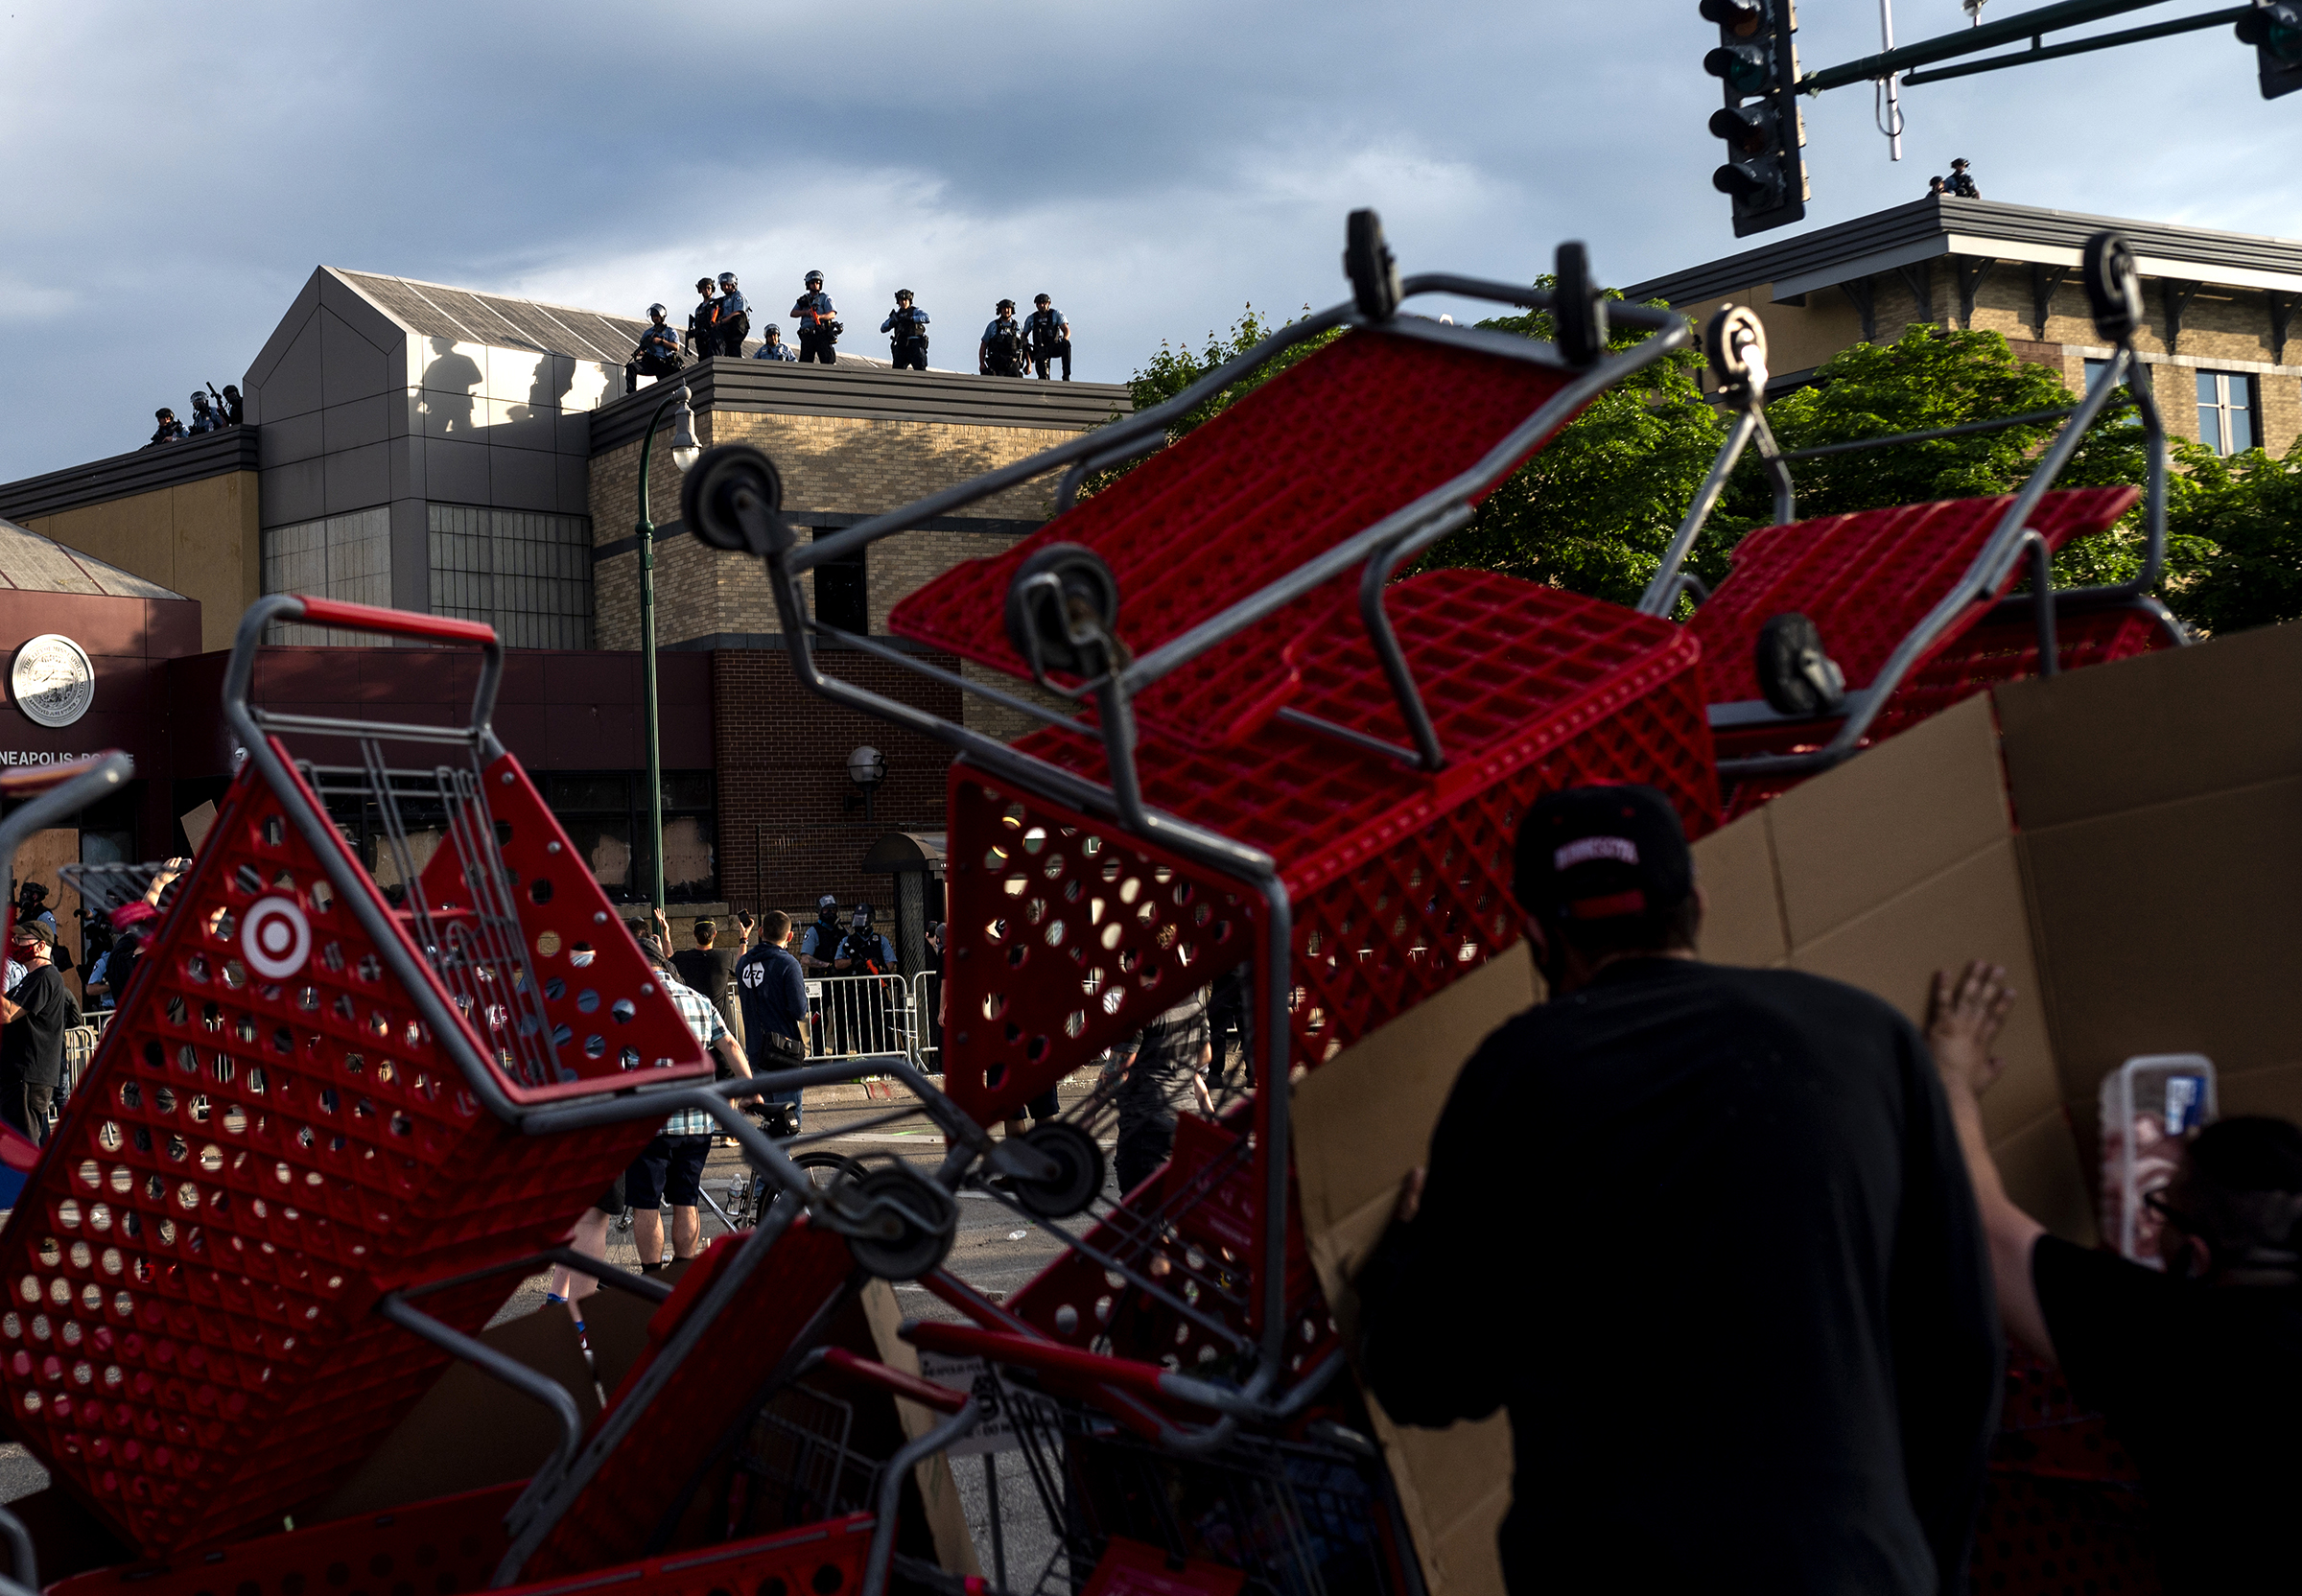 Protesters use shopping carts as a barricade as they confront police near the 3rd precinct on May 27.